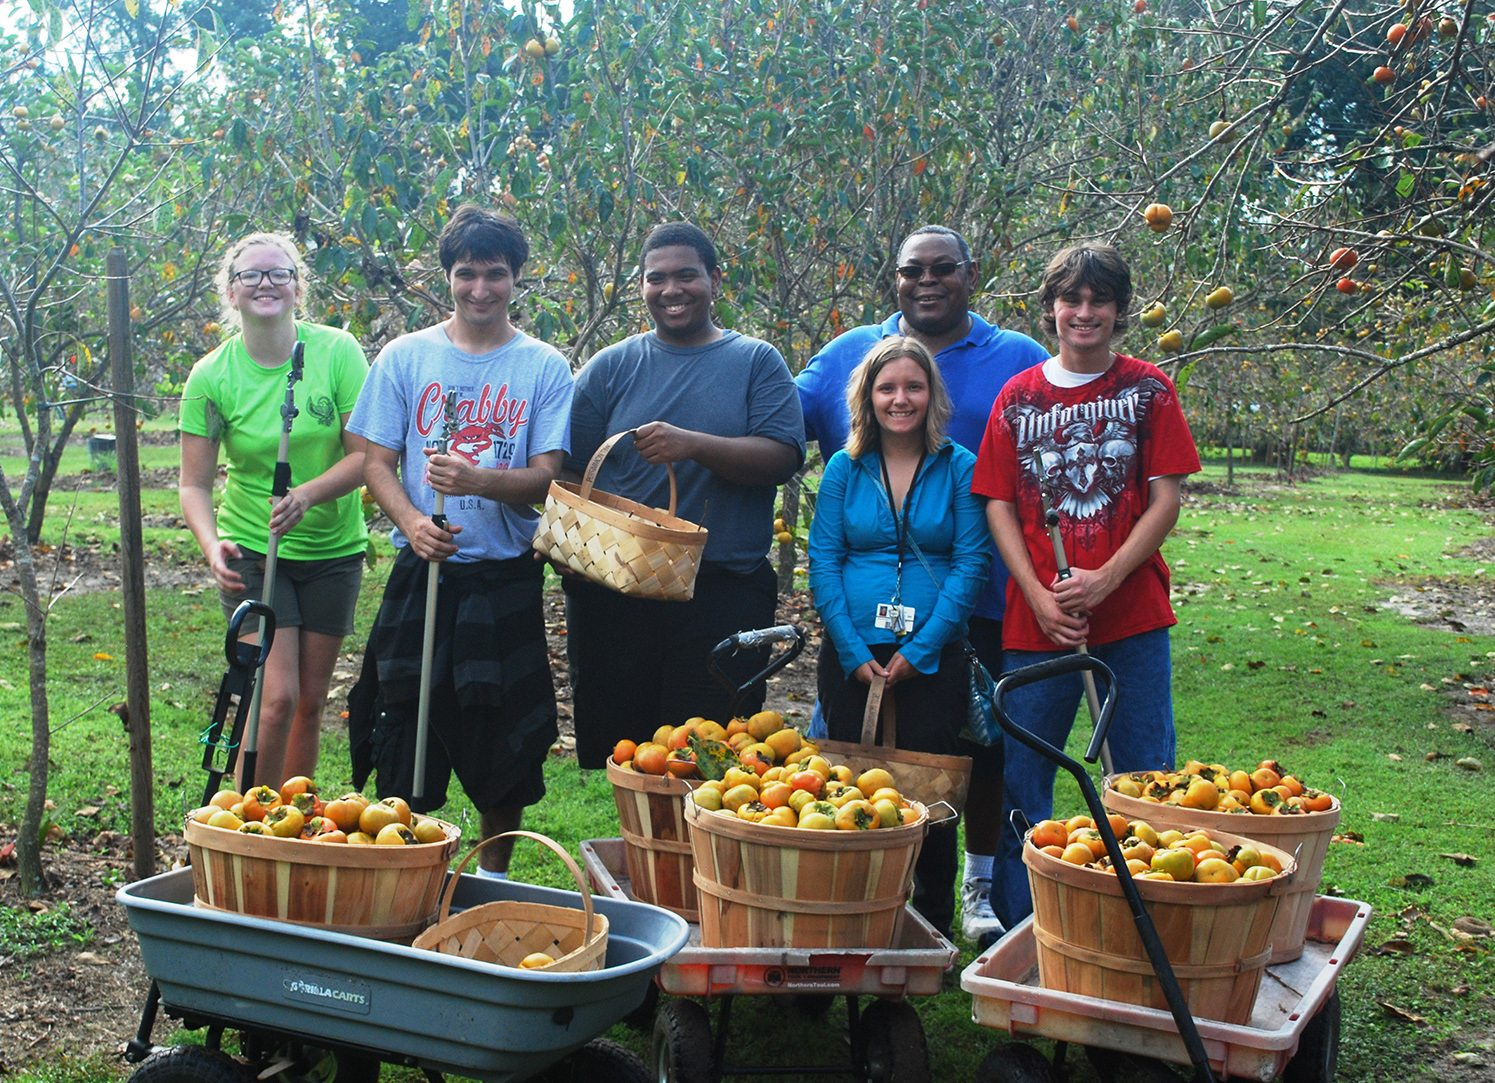 Full wagons after persimmon picking